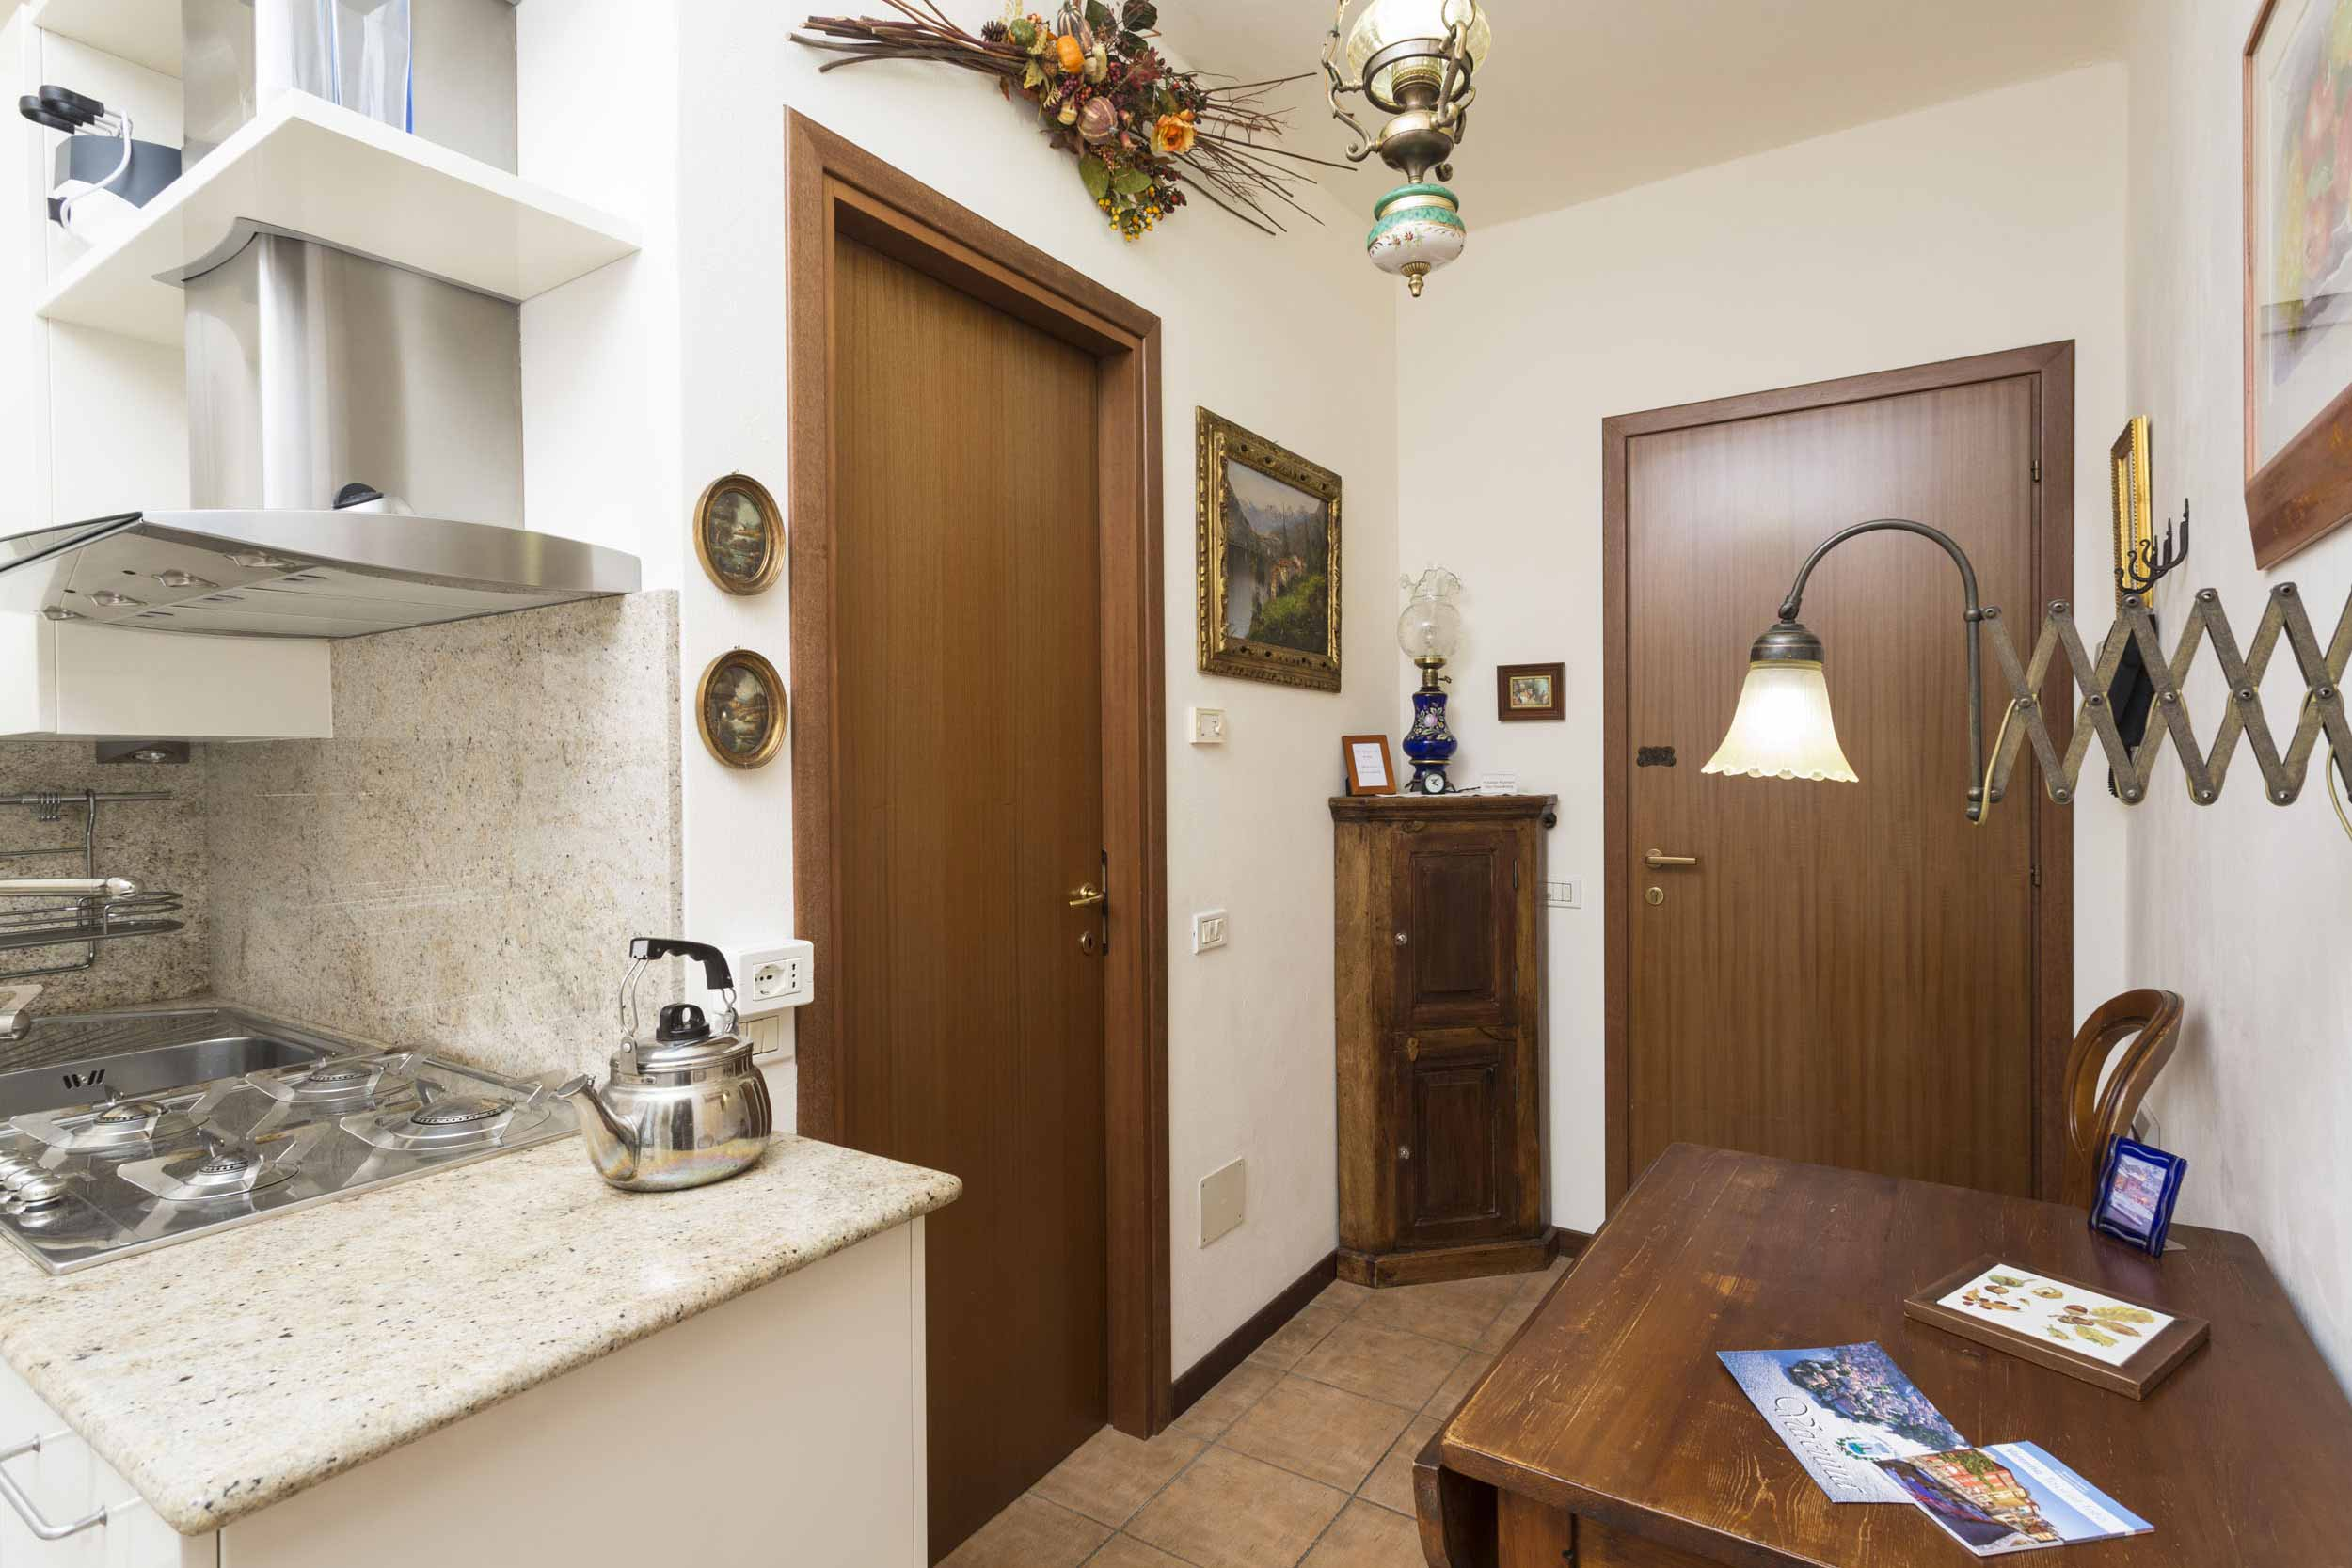 Entrance - Kitchen